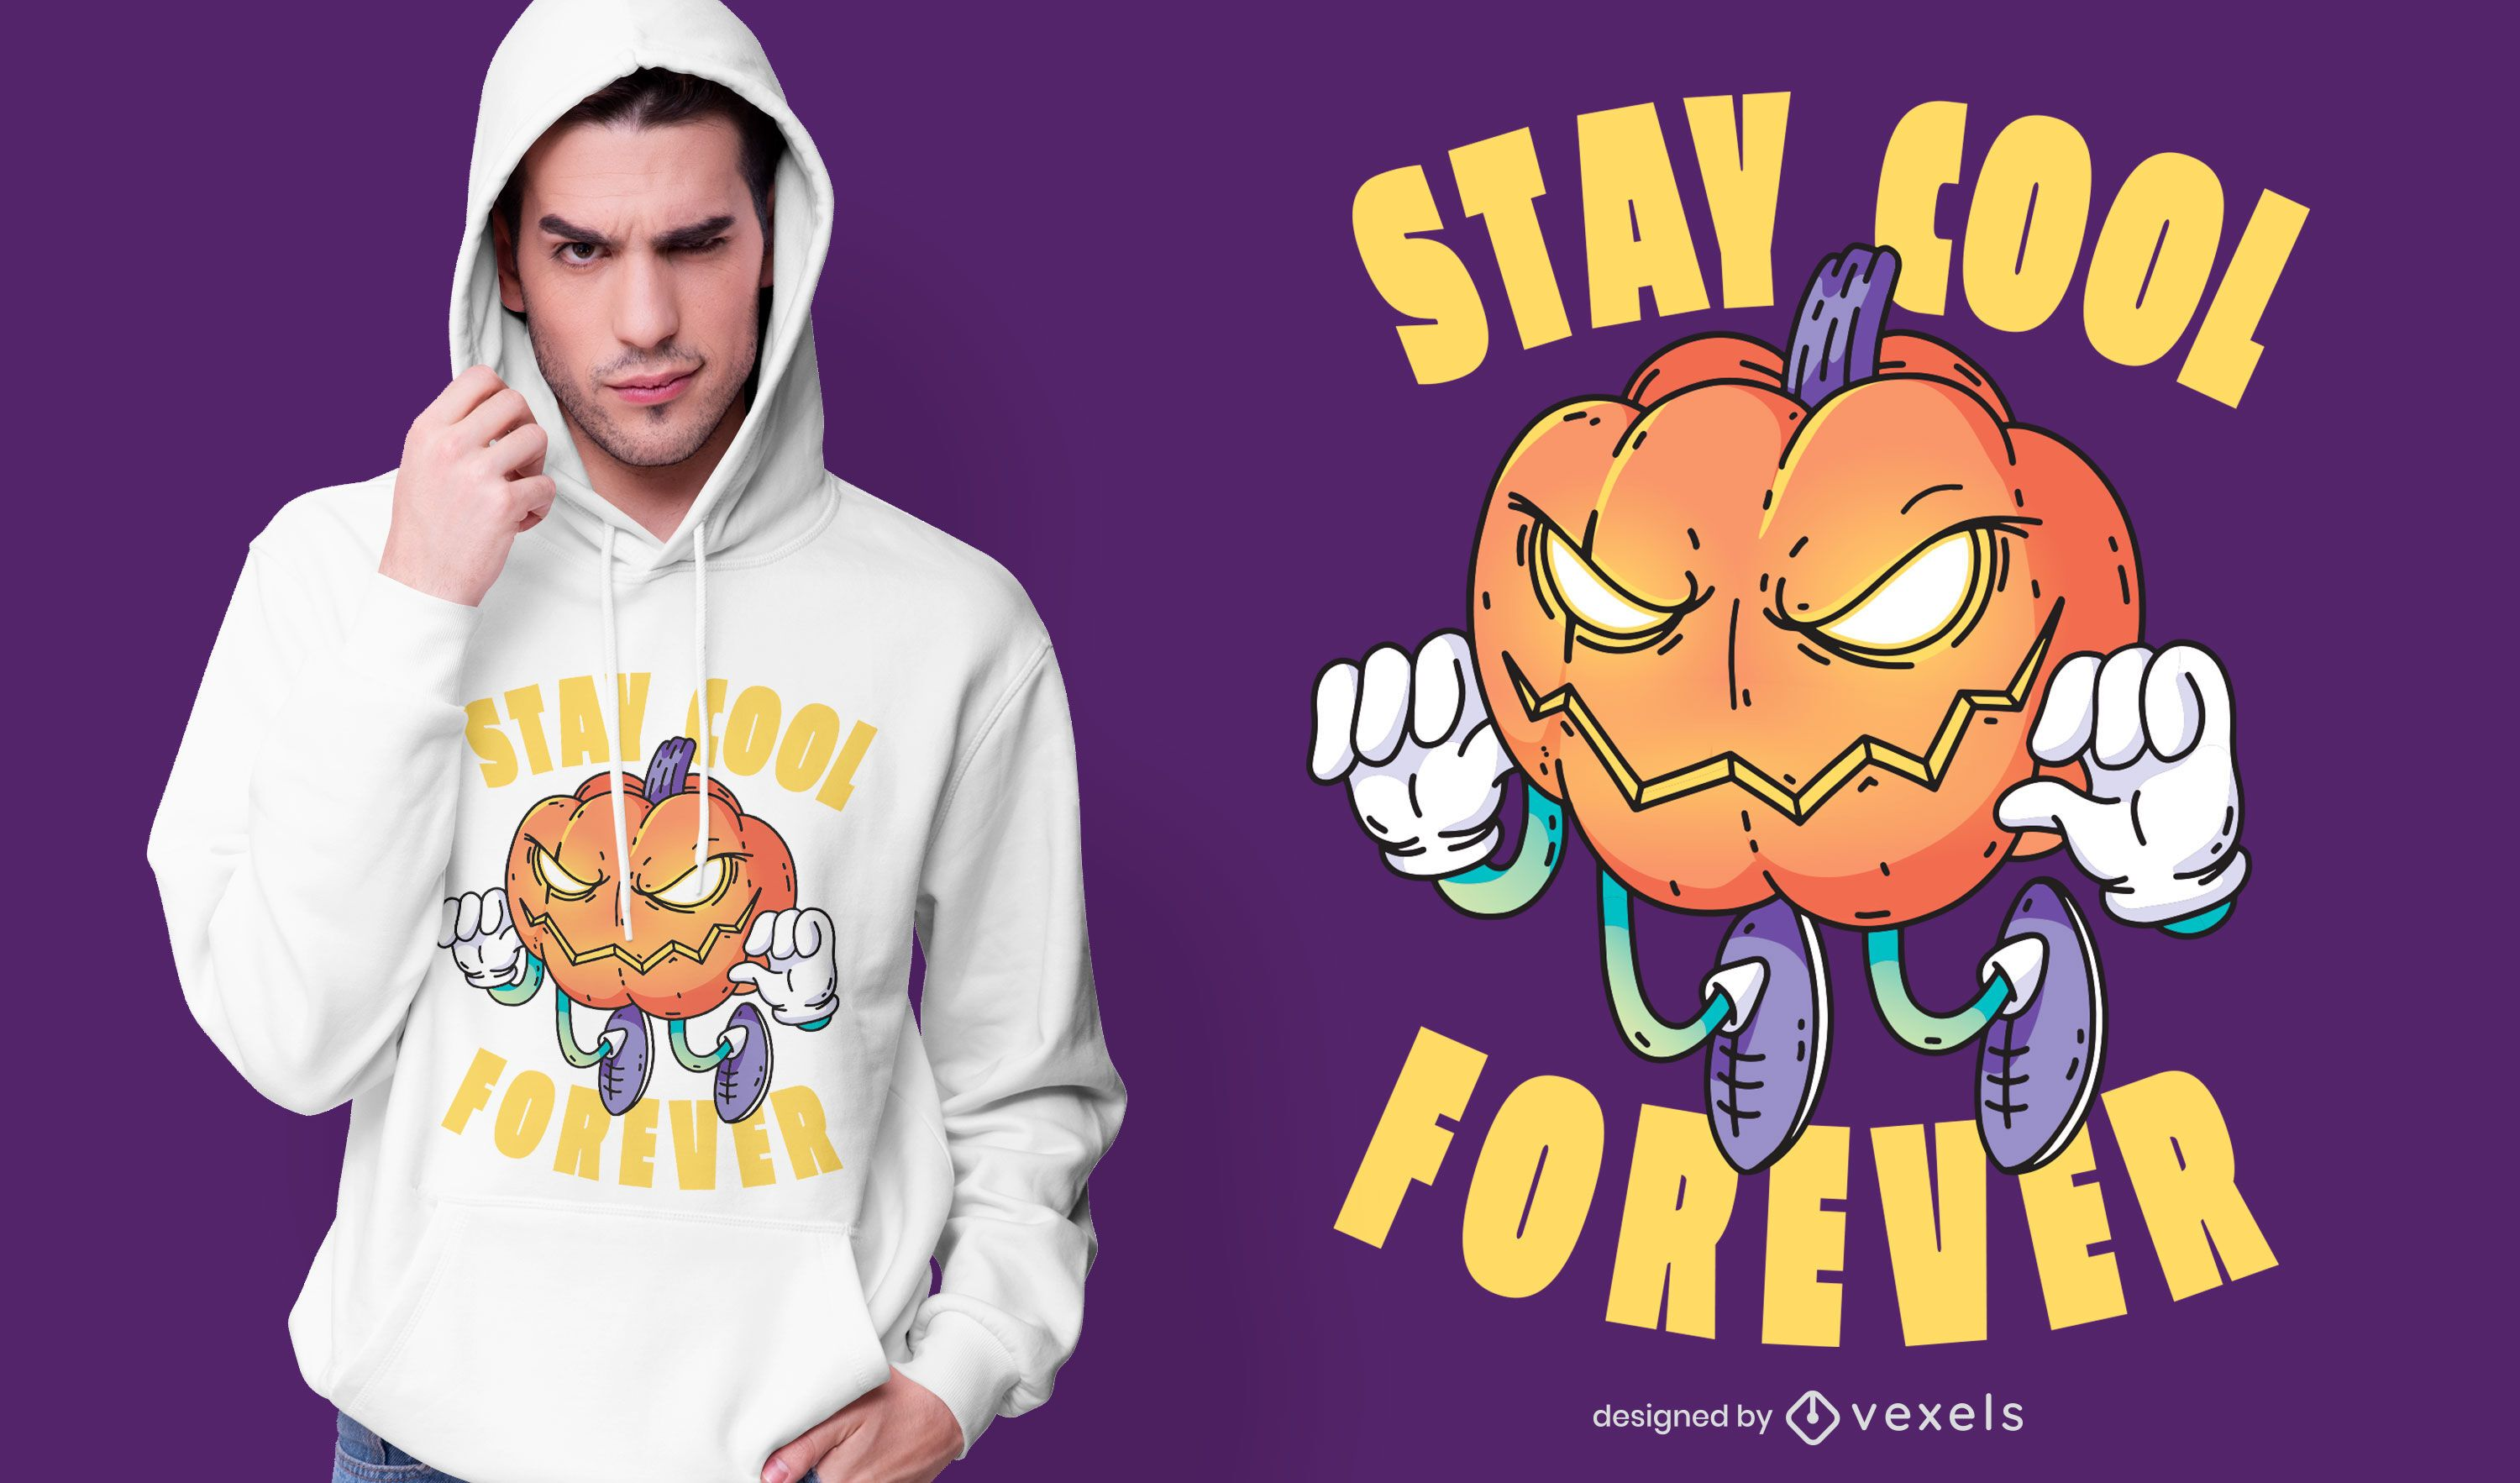 Stay cool forever t-shirt design